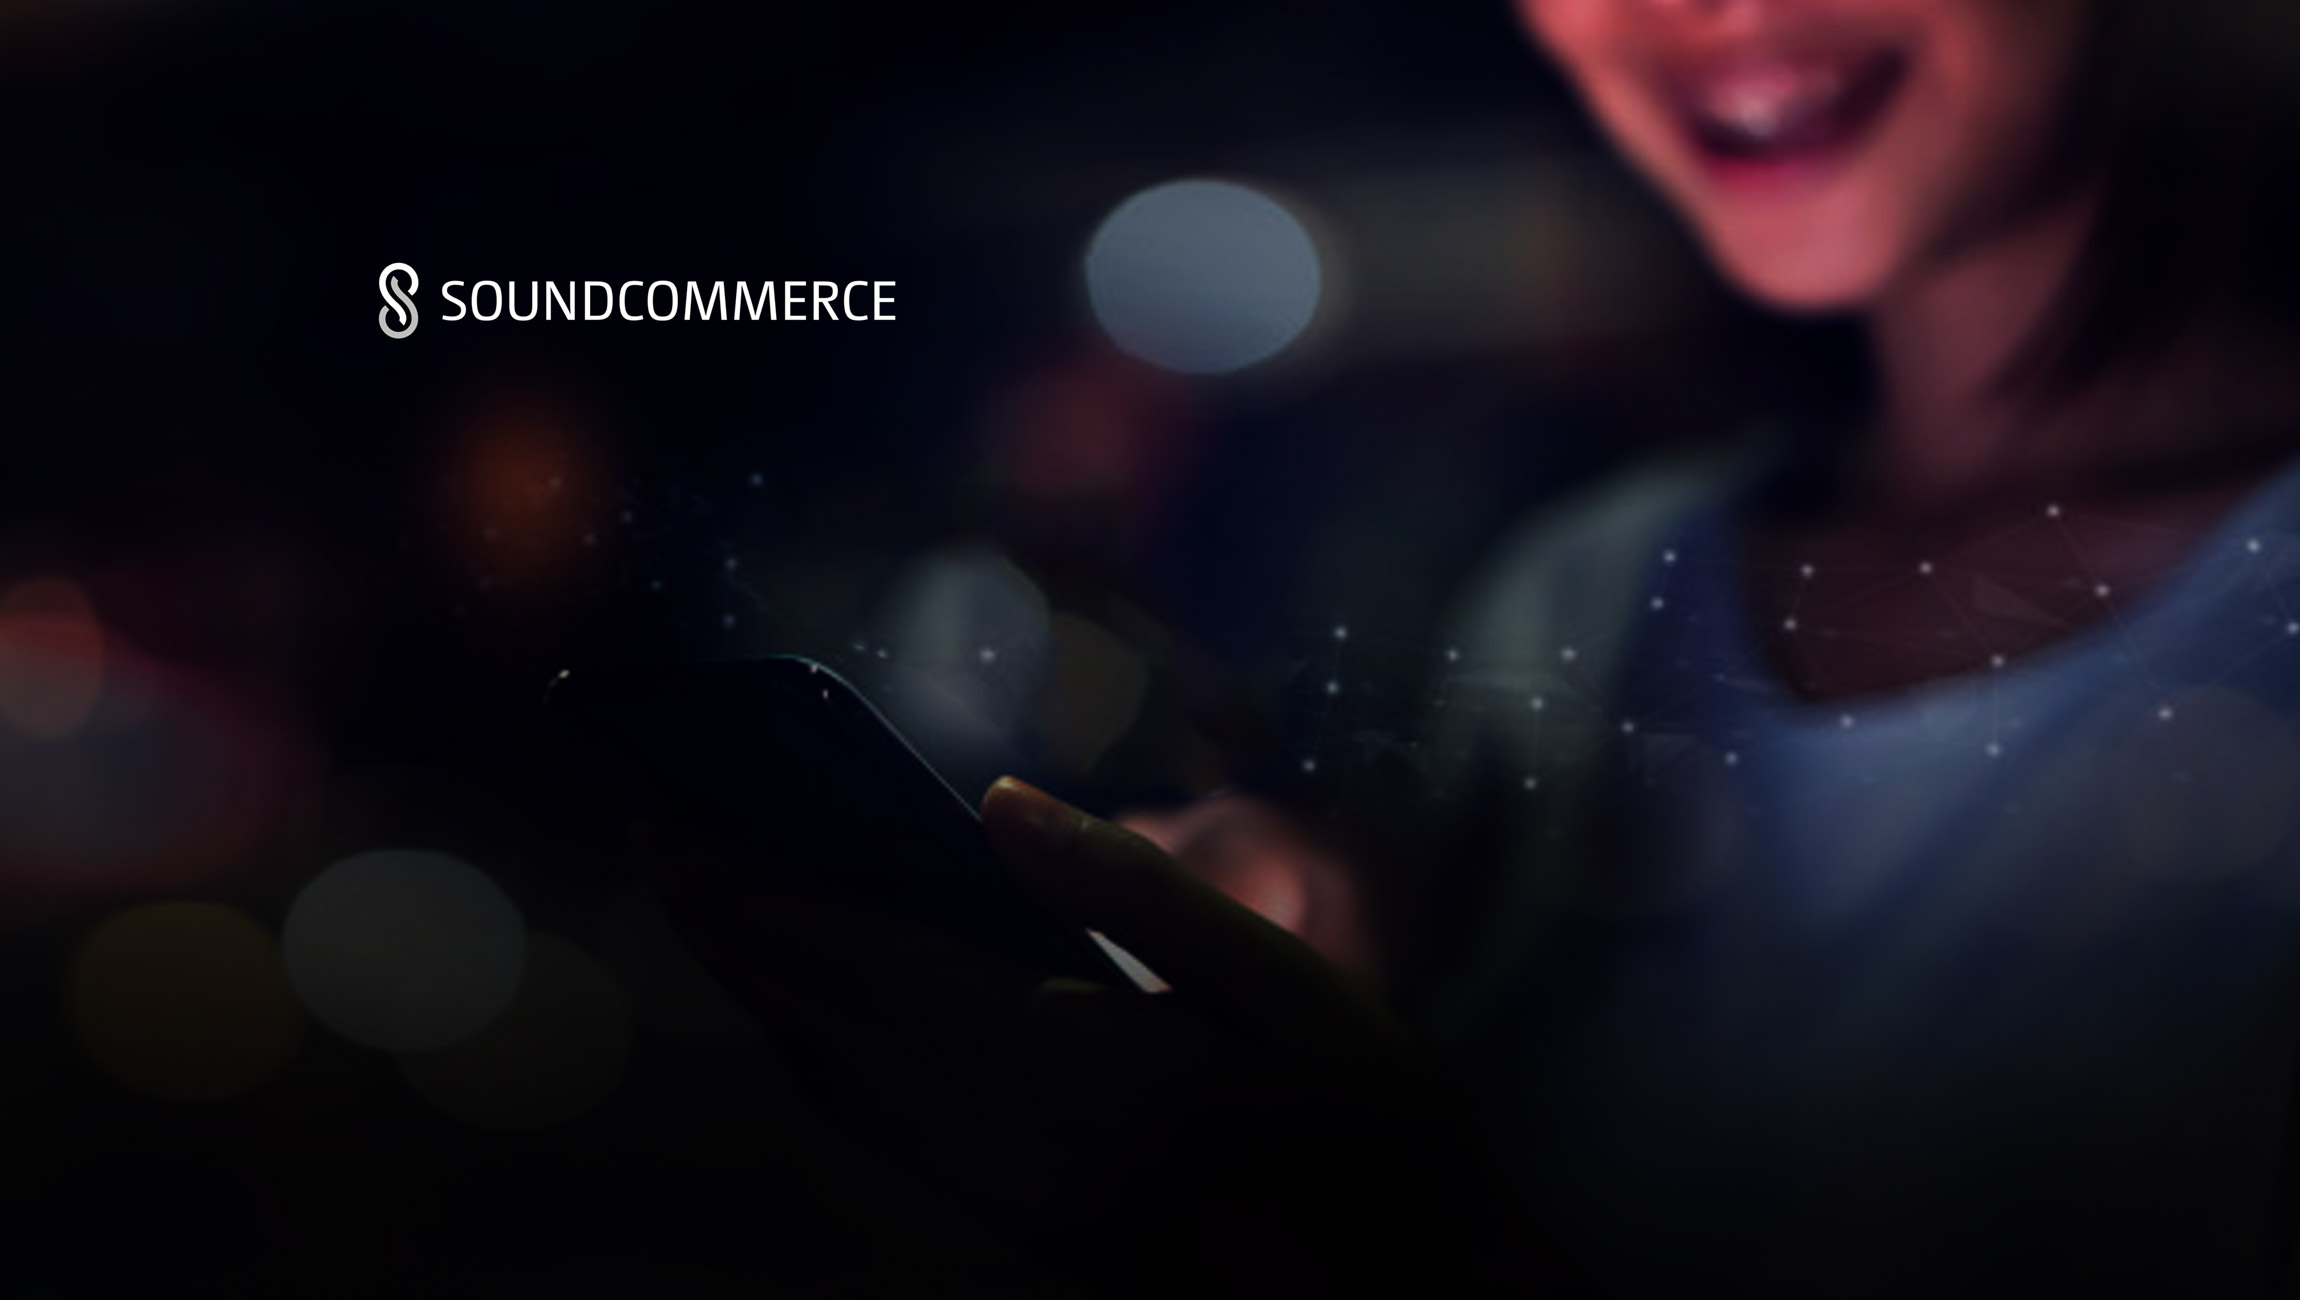 SoundCommerce Closes $15M A-Round Led by Emergence, Optimizes Real-Time Data and Predictive Decisions for Retail Brands